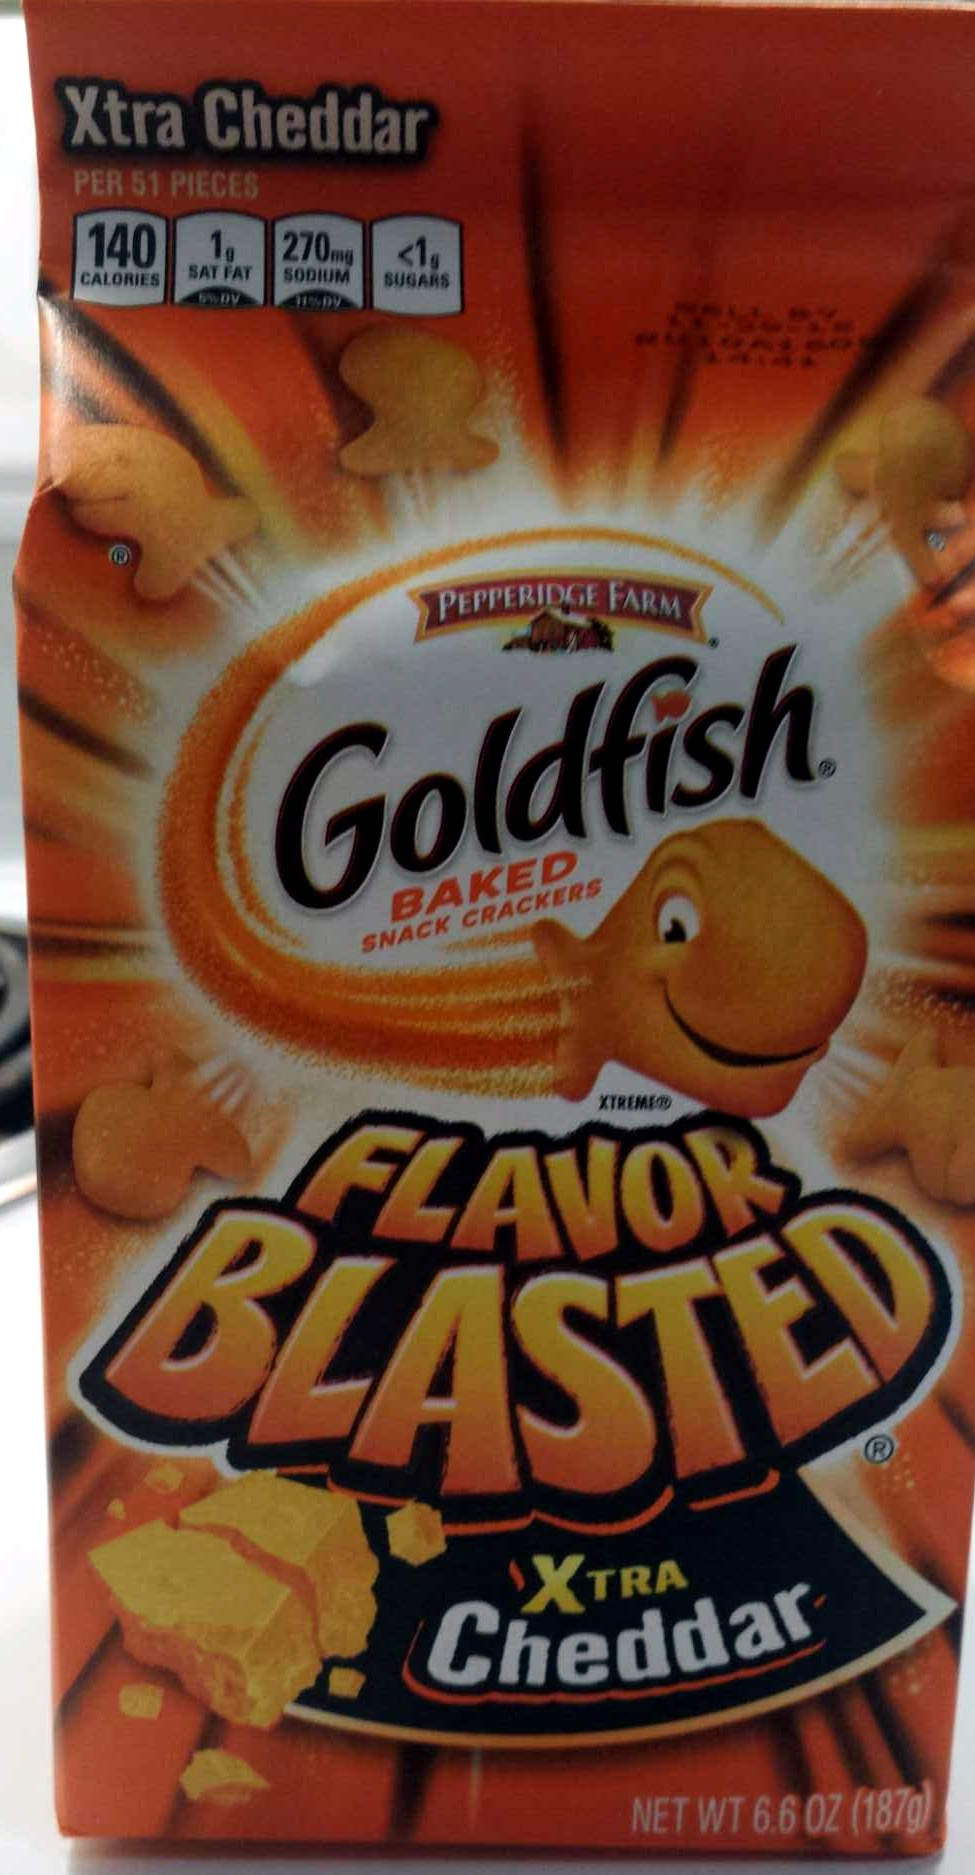 Goldfish Flavor Blasted Xtra Cheddar - Product